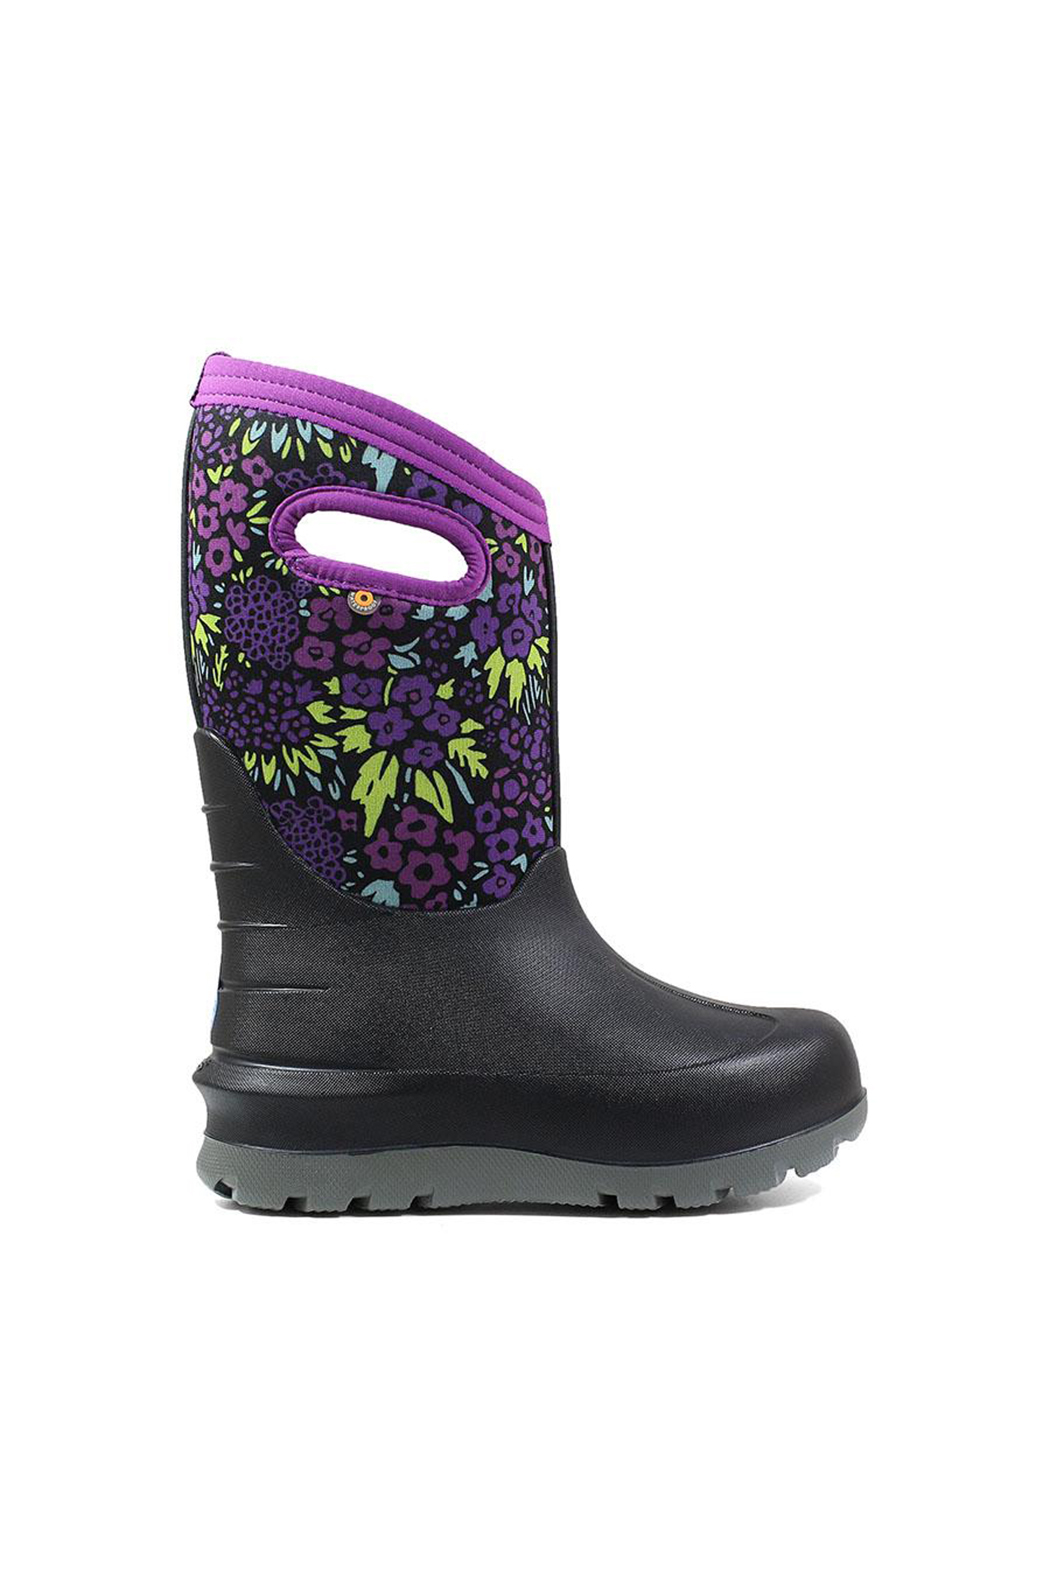 BOGS Neo-Classic NW Kids Waterproof Insulated Boots - Main Image